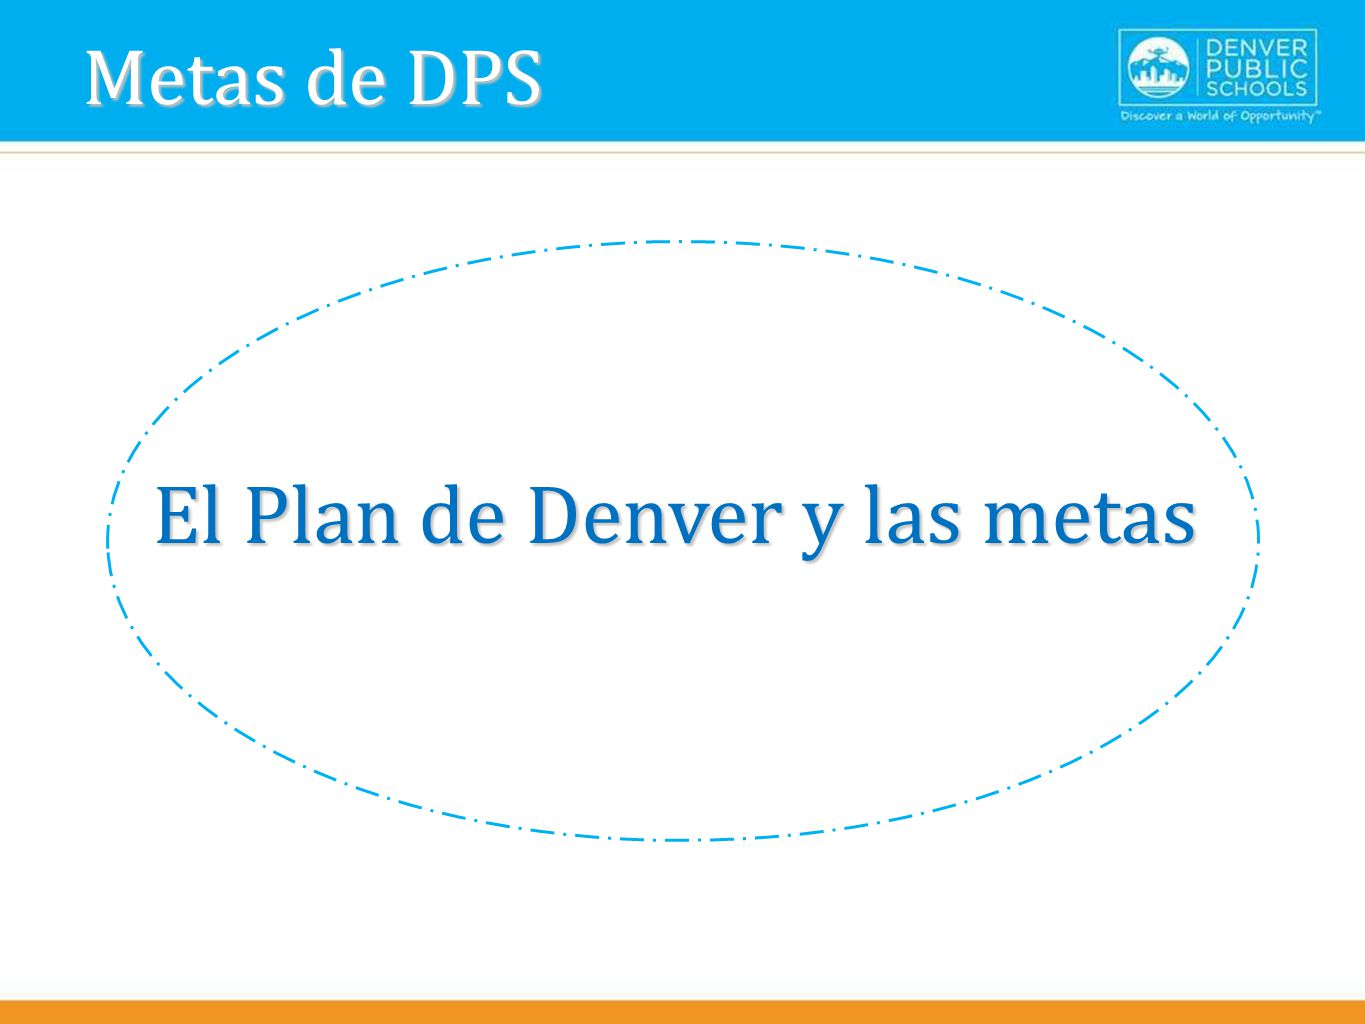 El Plan de Denver y las metas